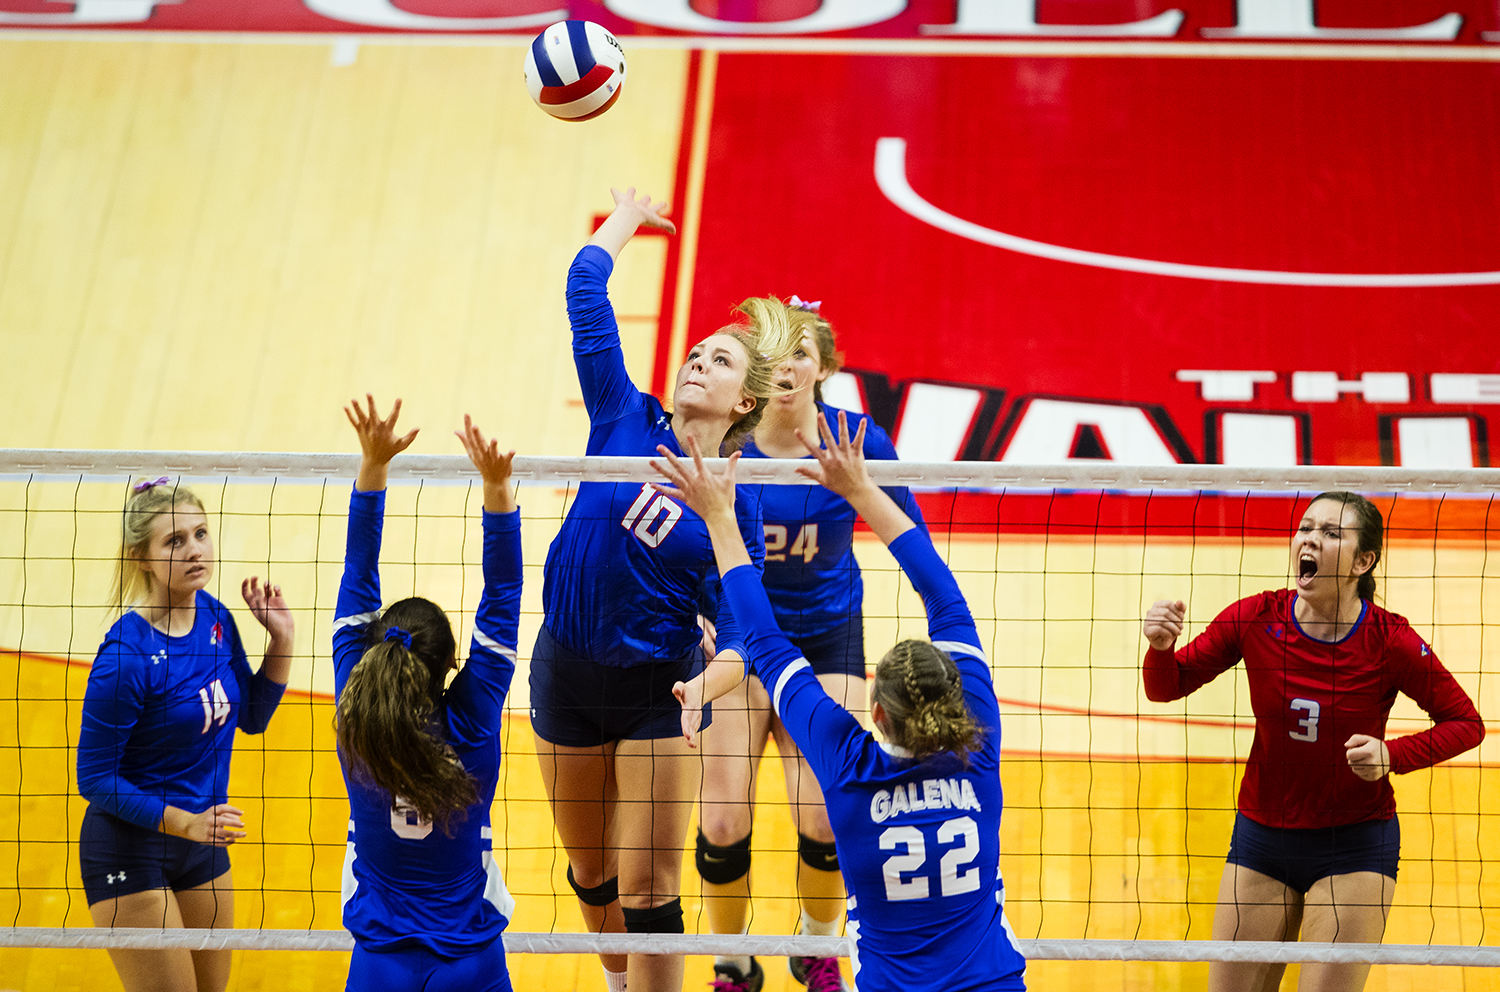 Pleasant Plains' Allie Edwards spikes the ball against Galena during the IHSA Class 2A Volleyball championship at Redbird Arena in Normal Saturday, Nov. 10, 2018. [Ted Schurter/The State Journal-Register]